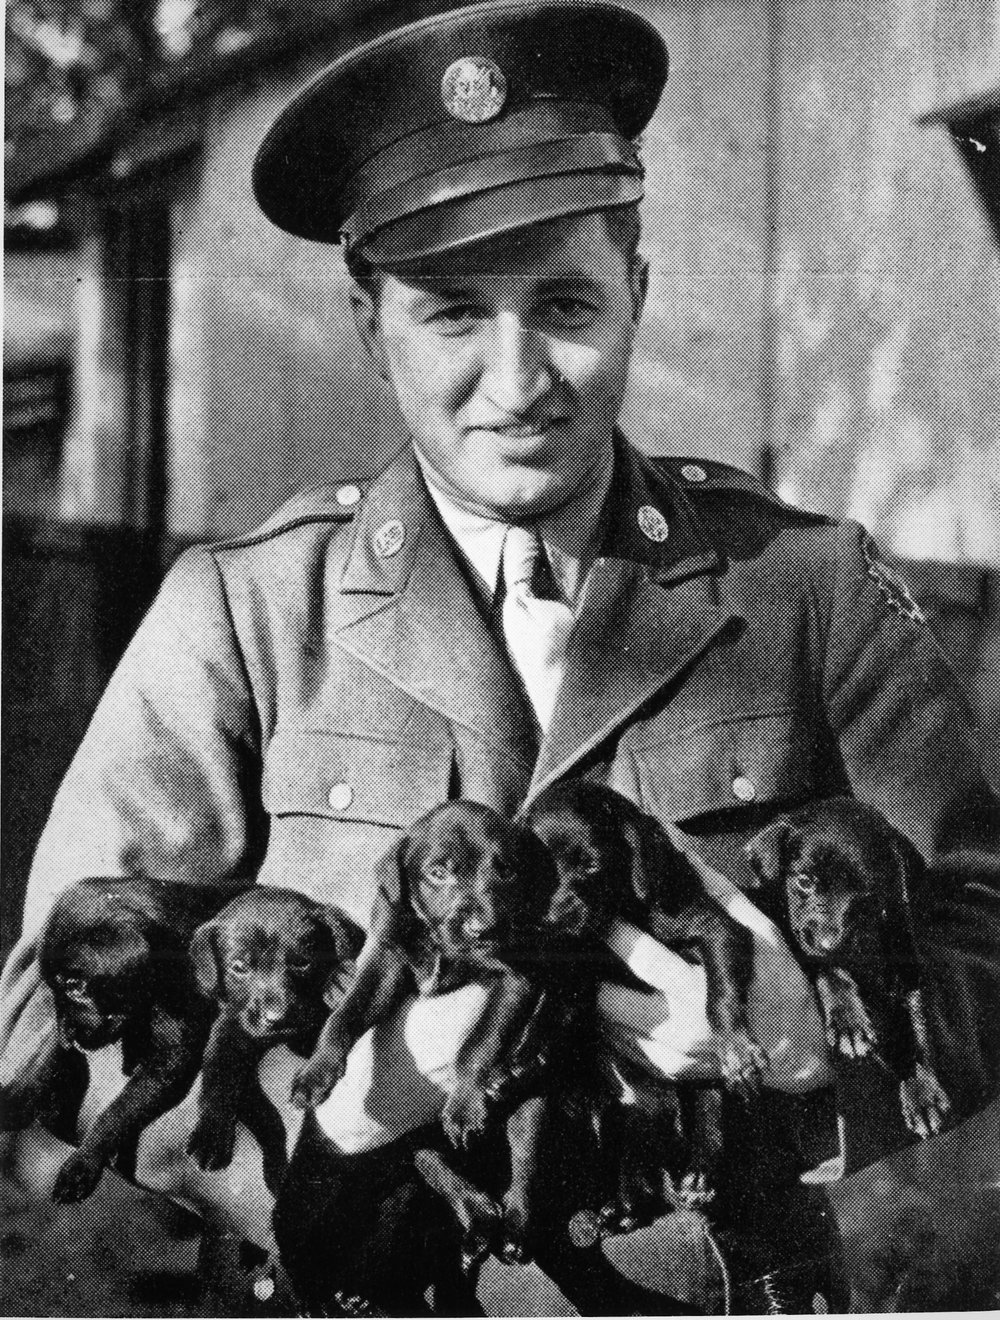 Officer-with-arms-full-of-dark-lab-type-puppies.jpg